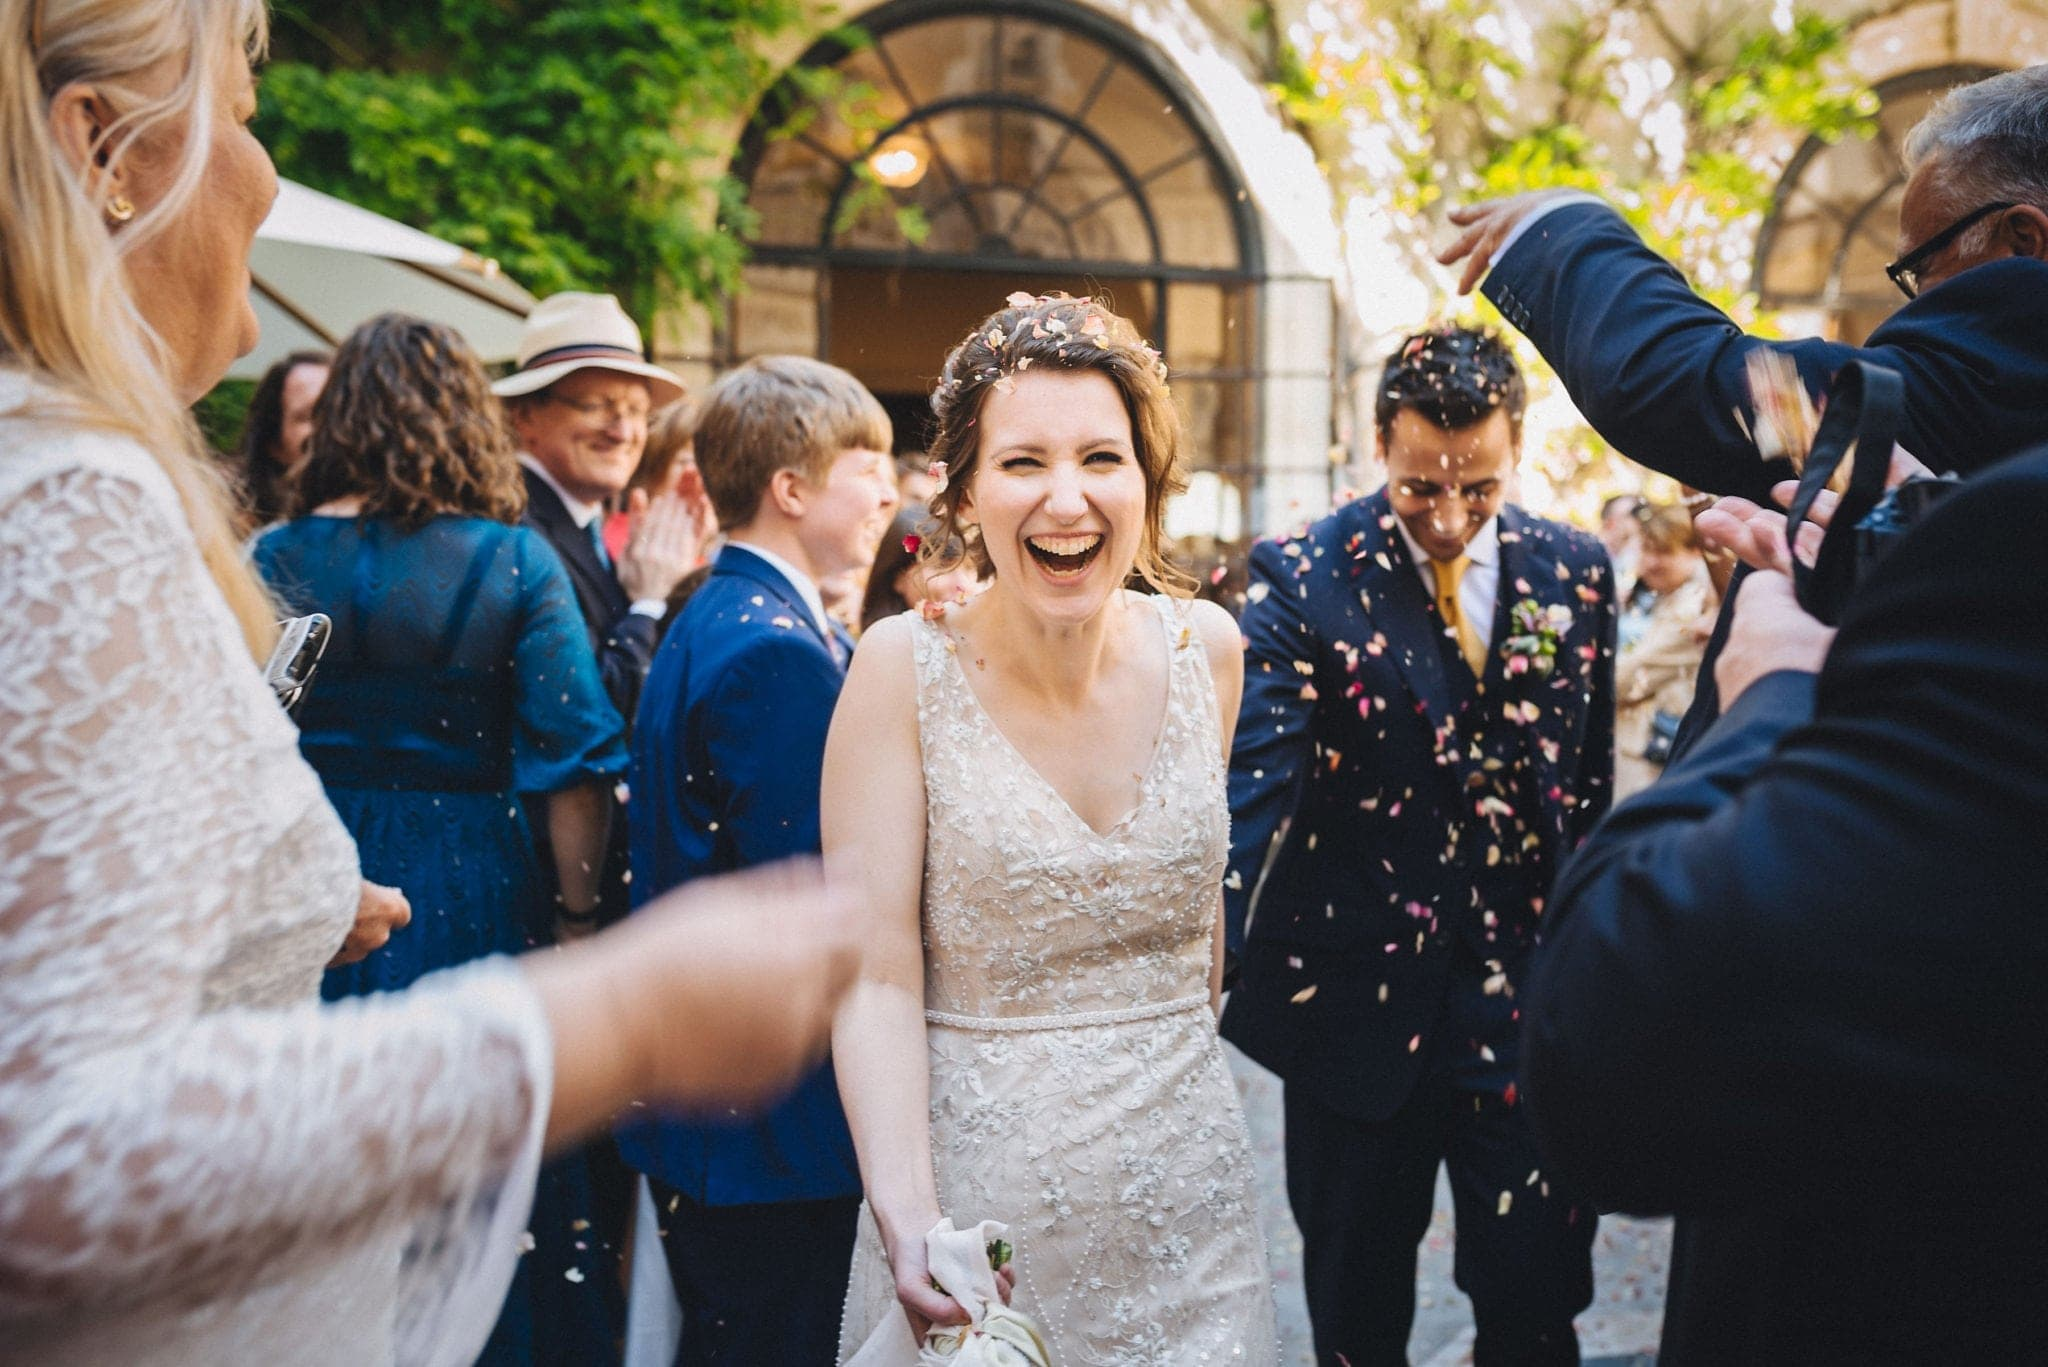 Bride and groom walk through a confetti shower at Merchant Taylor's Hall